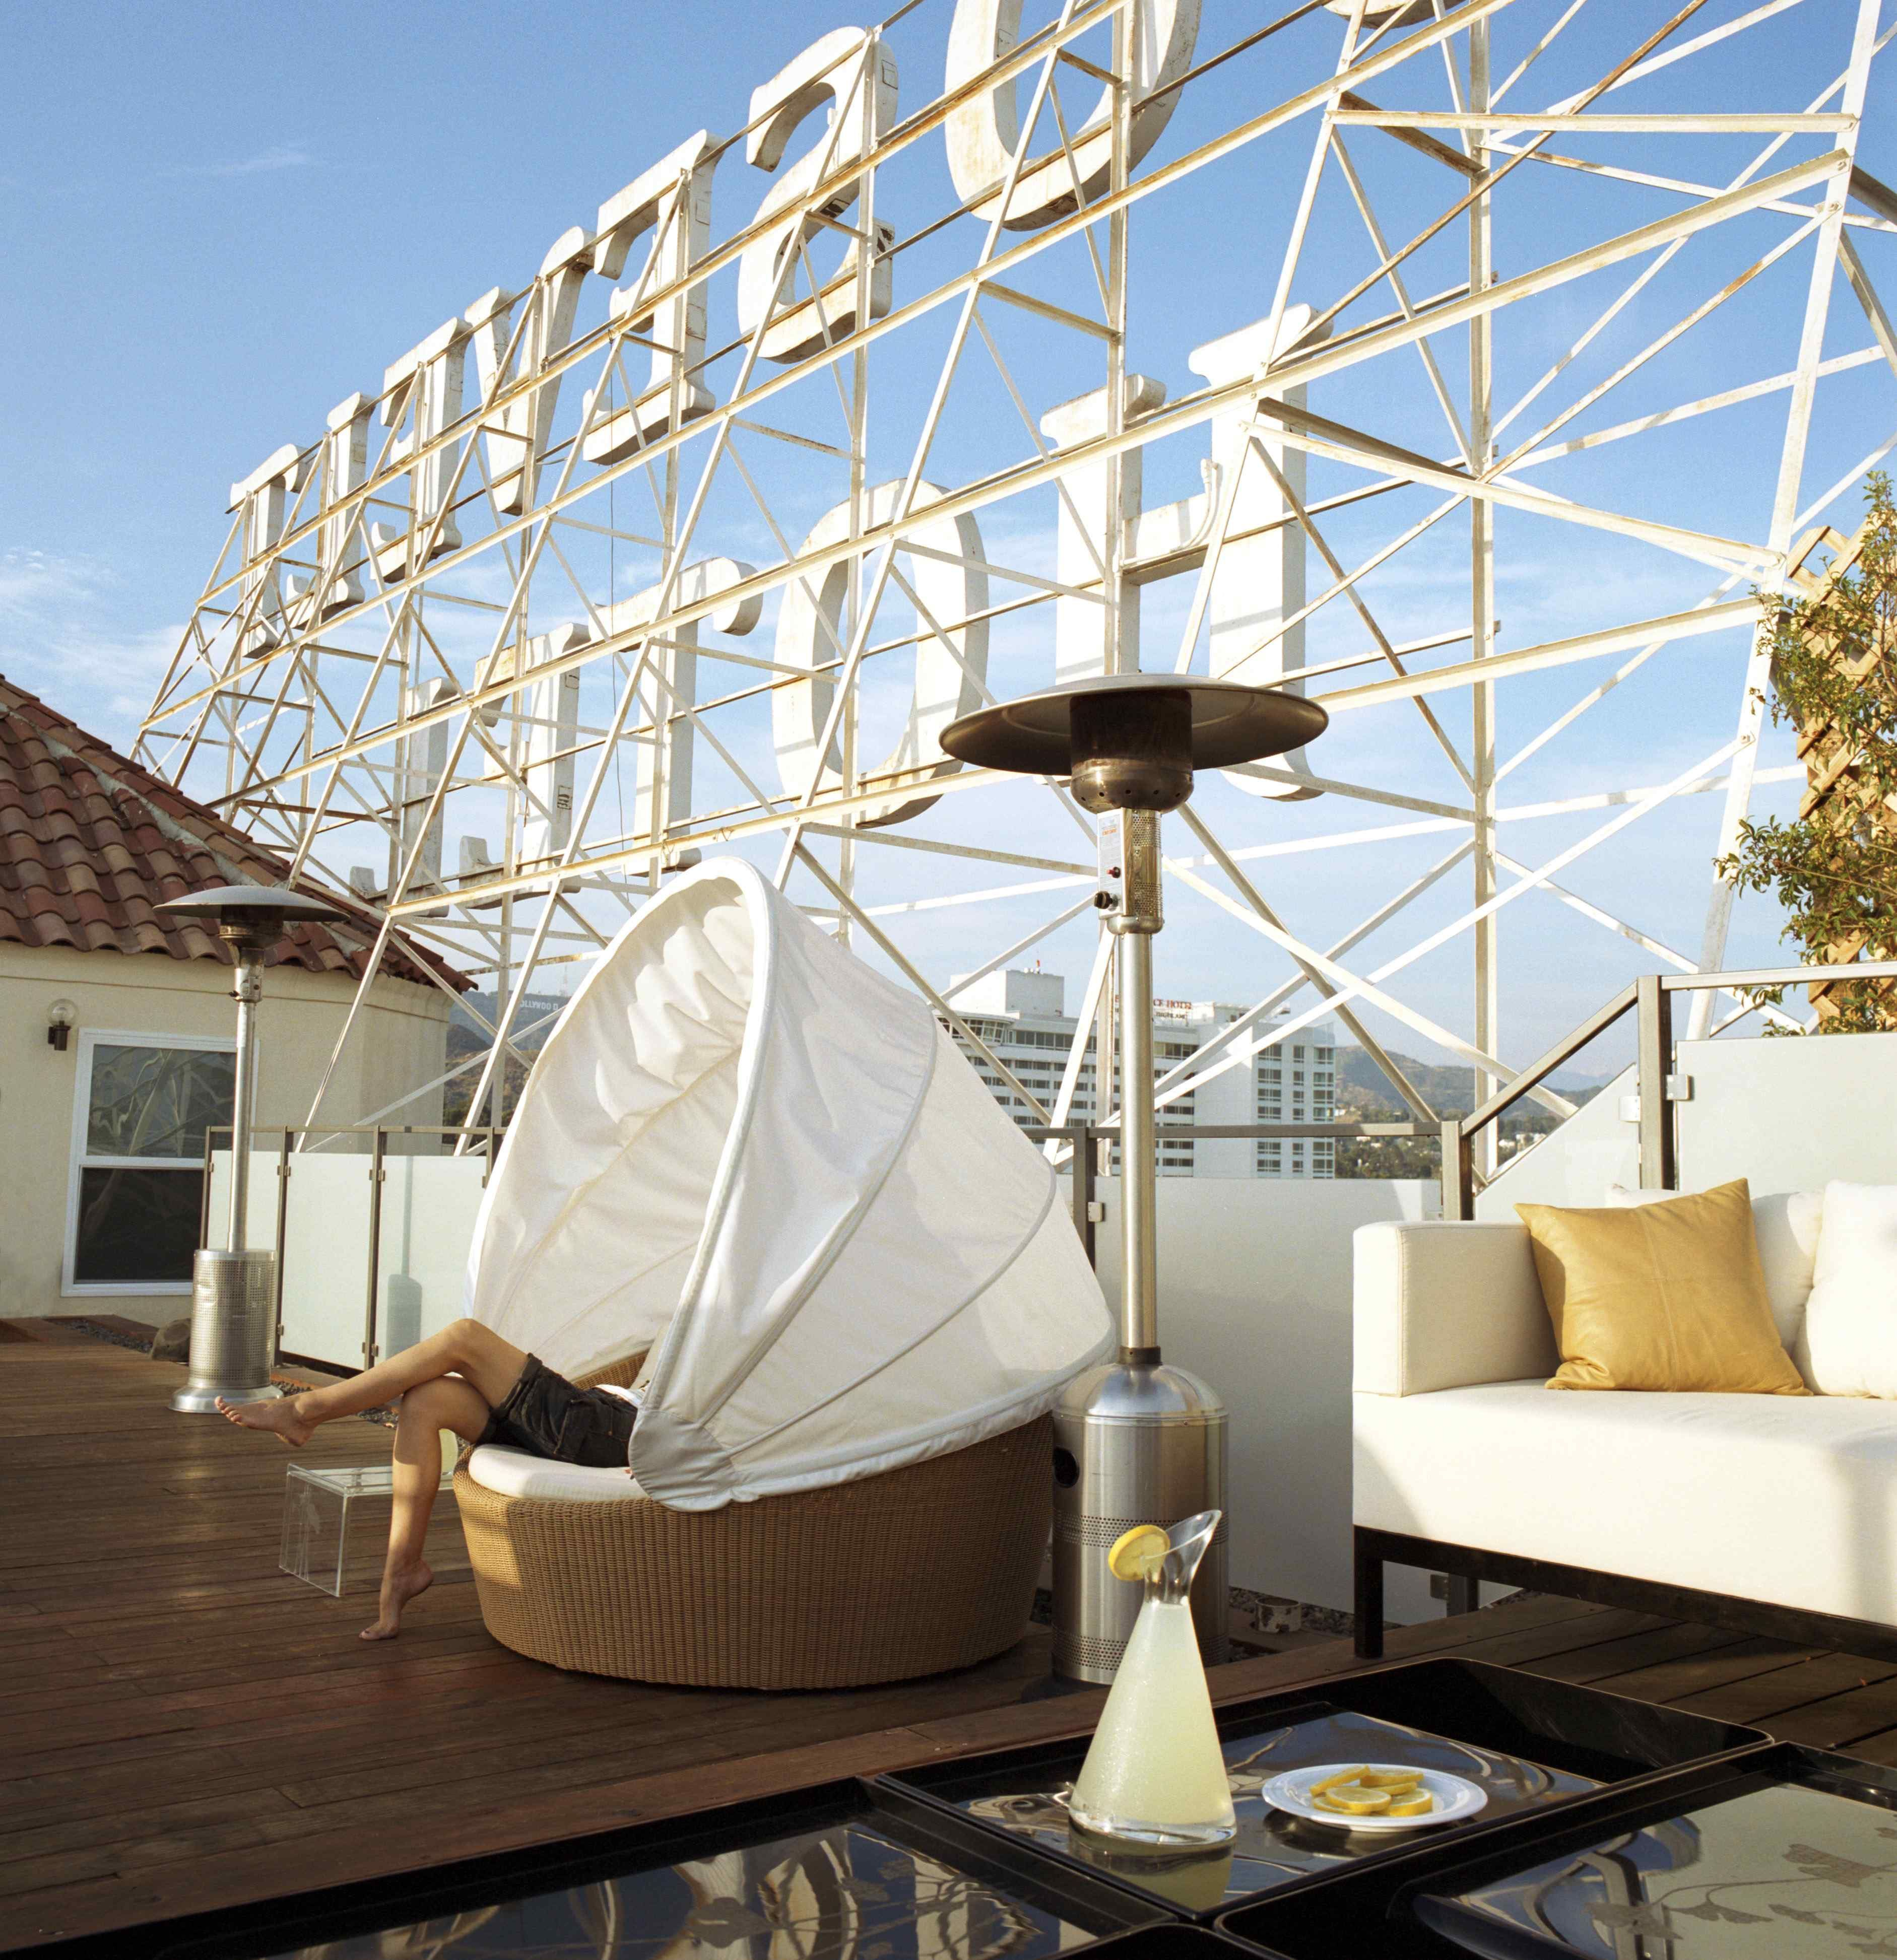 Exclusive rates at hollywood roosevelt hotel los angeles magellan luxury hotels gives you free service upgrades perks and the best rates guaranteed